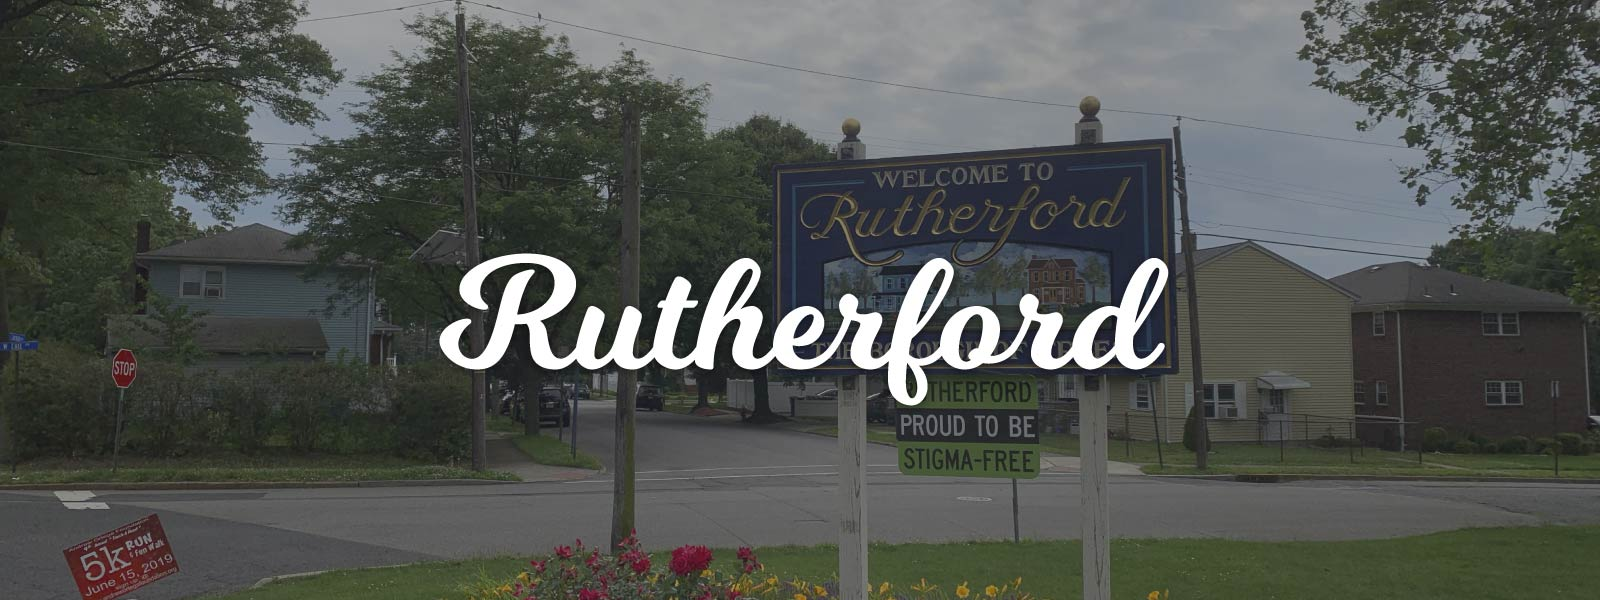 Suburban Spotlight: Rutherford, New Jersey